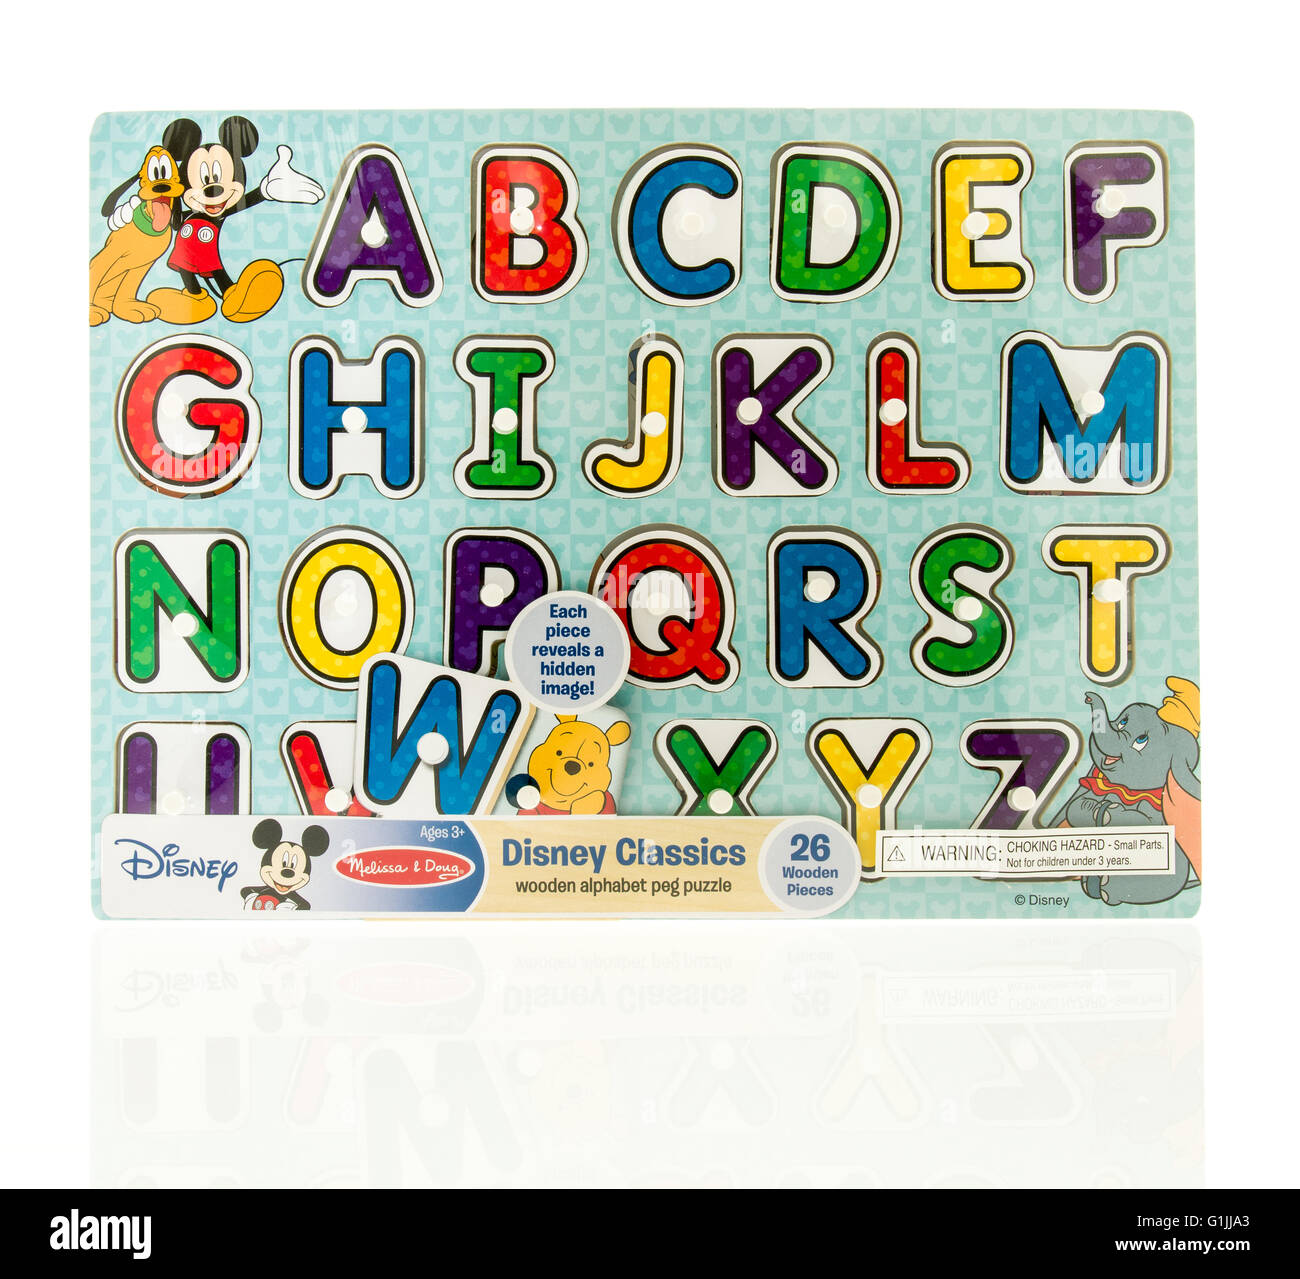 Winneconne, WI - 15 May 2016: Package of a Disney  classic alphabet puzzle on an isolated background - Stock Image